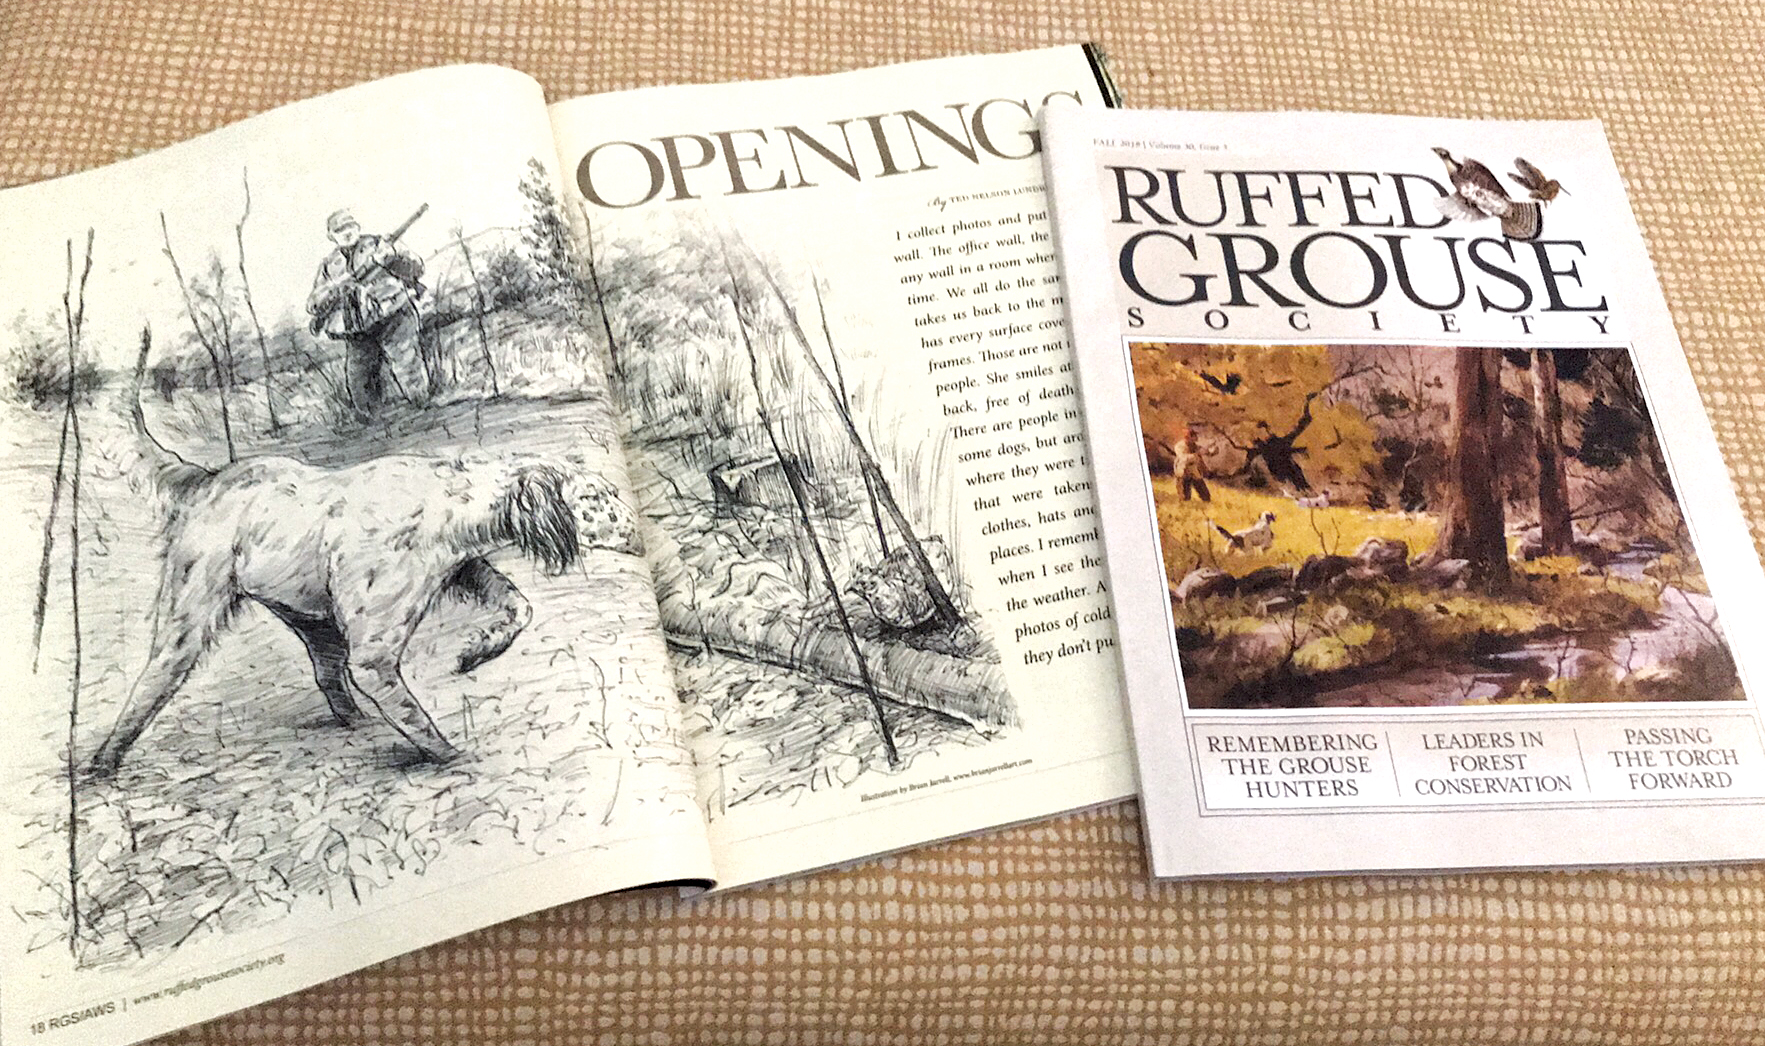 Ruffed Grouse Society (RGS / Fall 2018) is a very classy, very respected publication throughout the country, and I was thrilled to find out I had some artwork in it. Better yet, to open it up and see it's a full spread, accompanying a great author such as Ted Lundrigan!